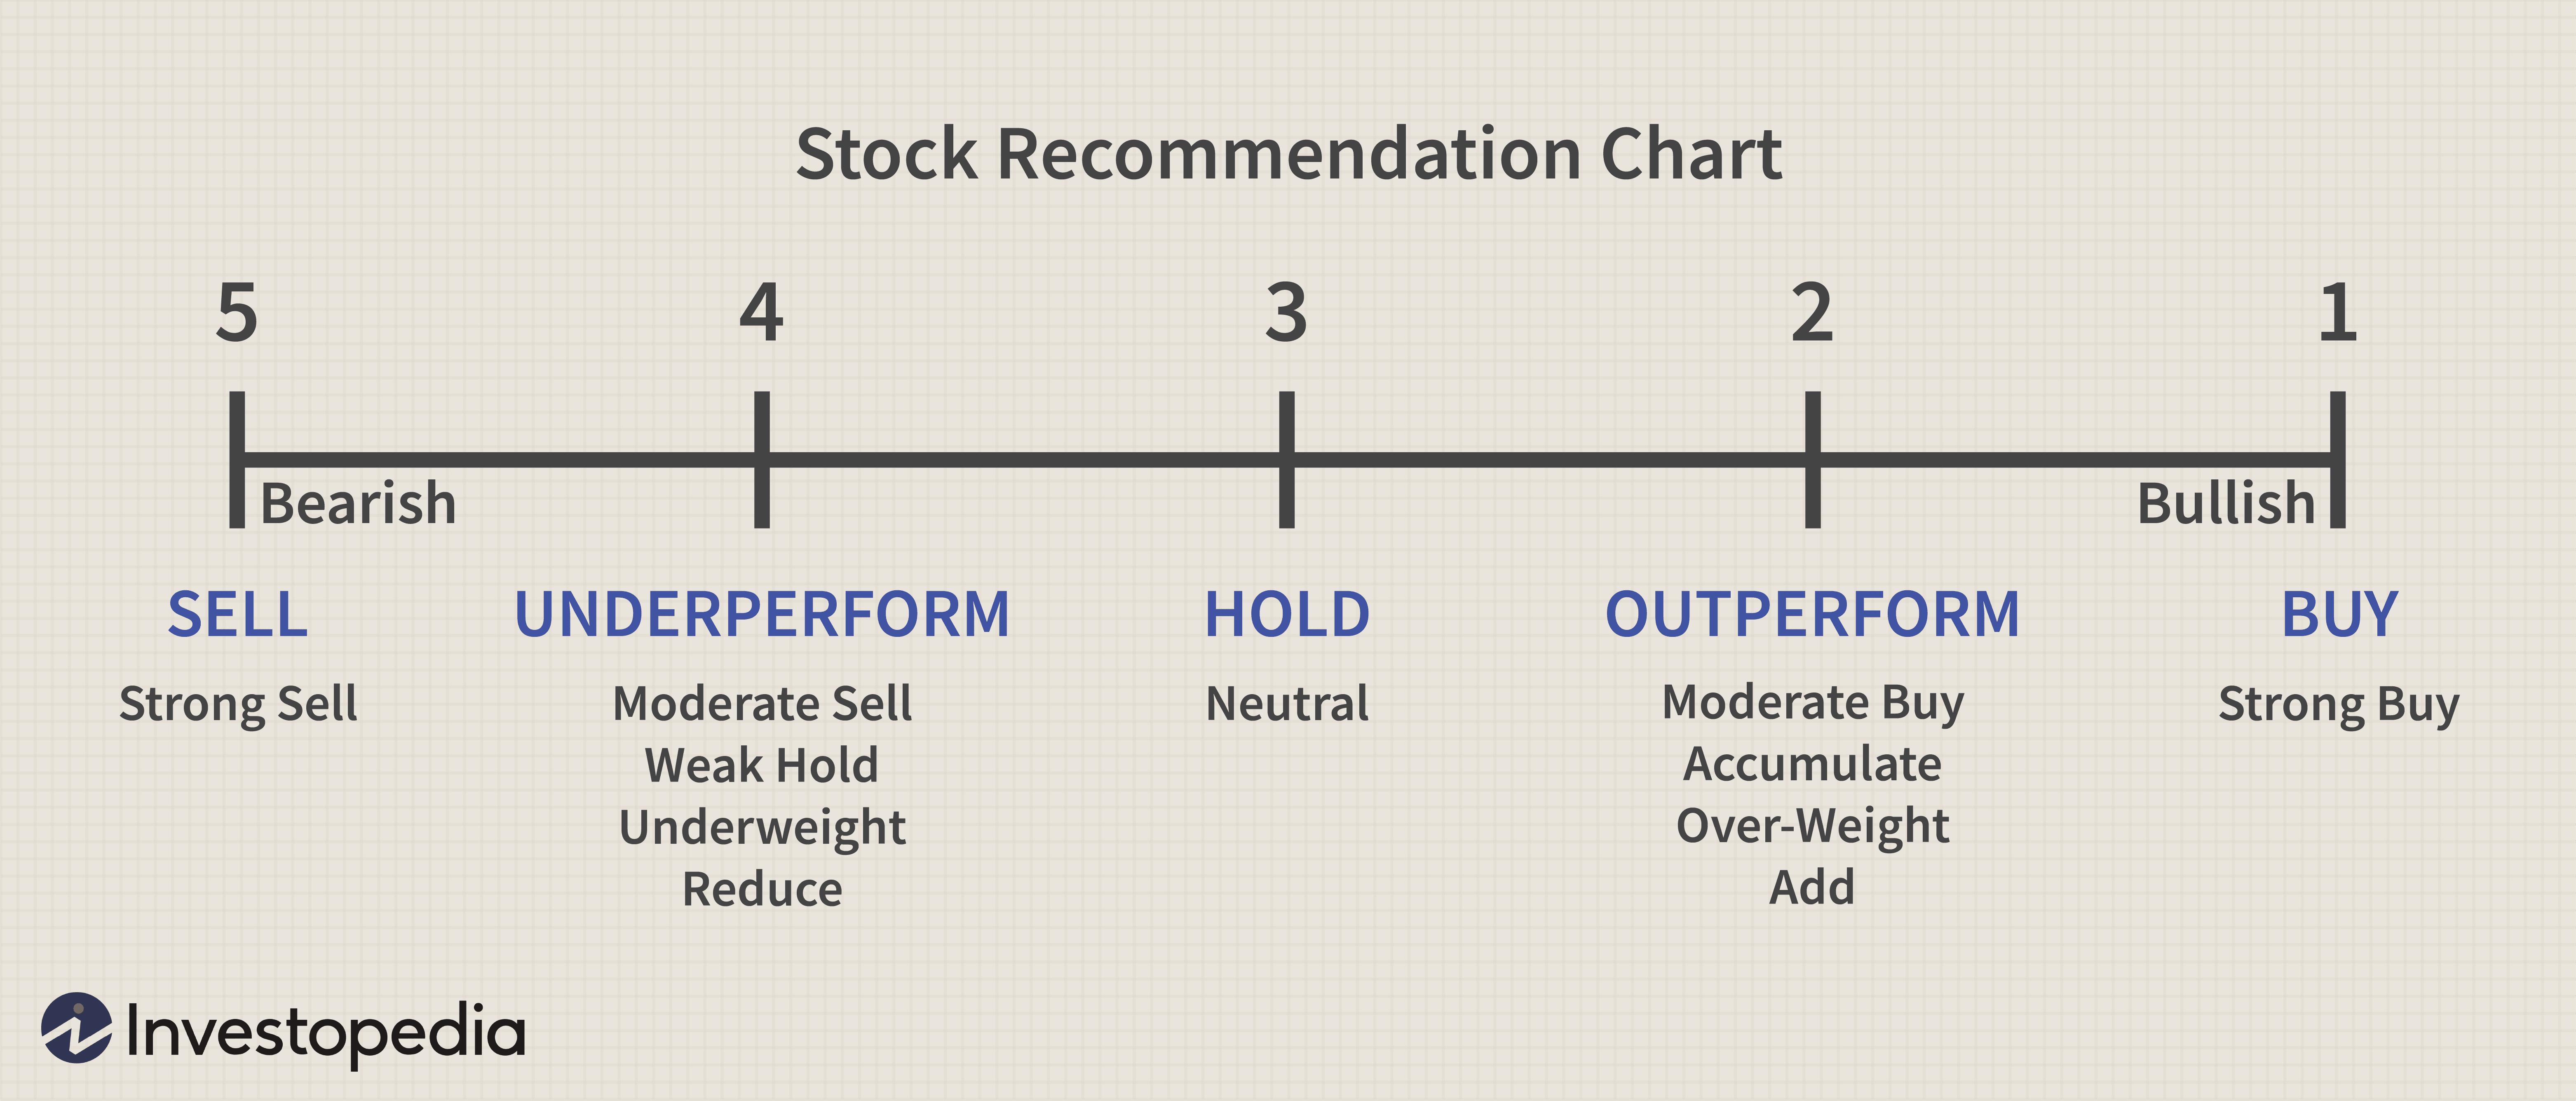 Stock Recommendation Chart